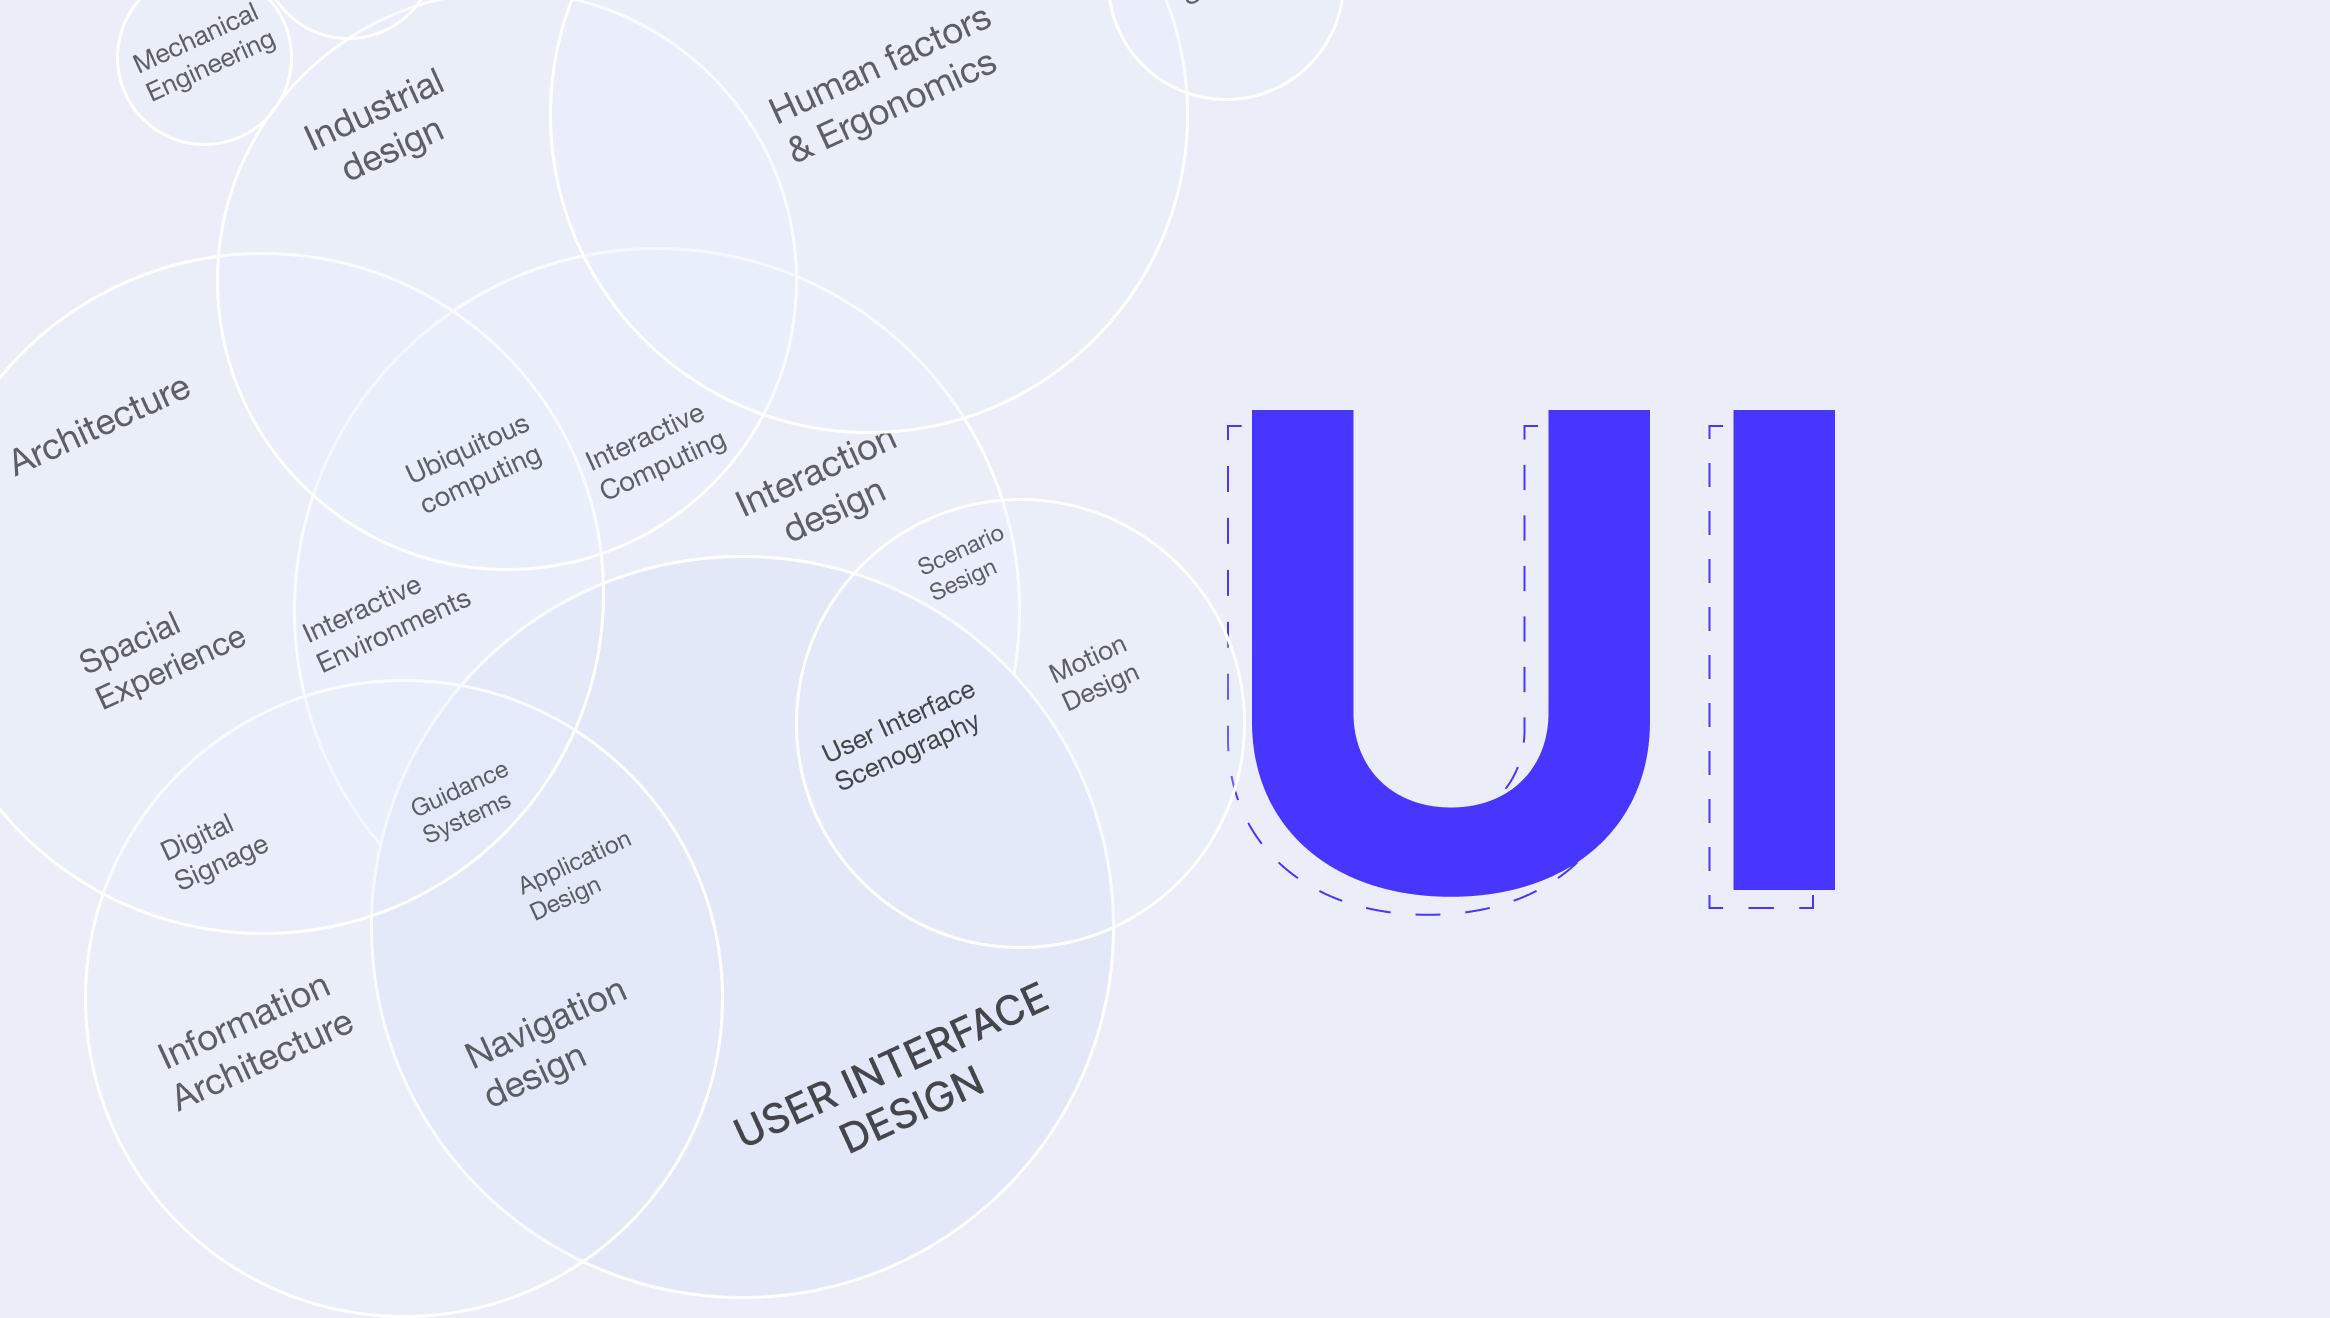 All the areas you can imagine under UI design